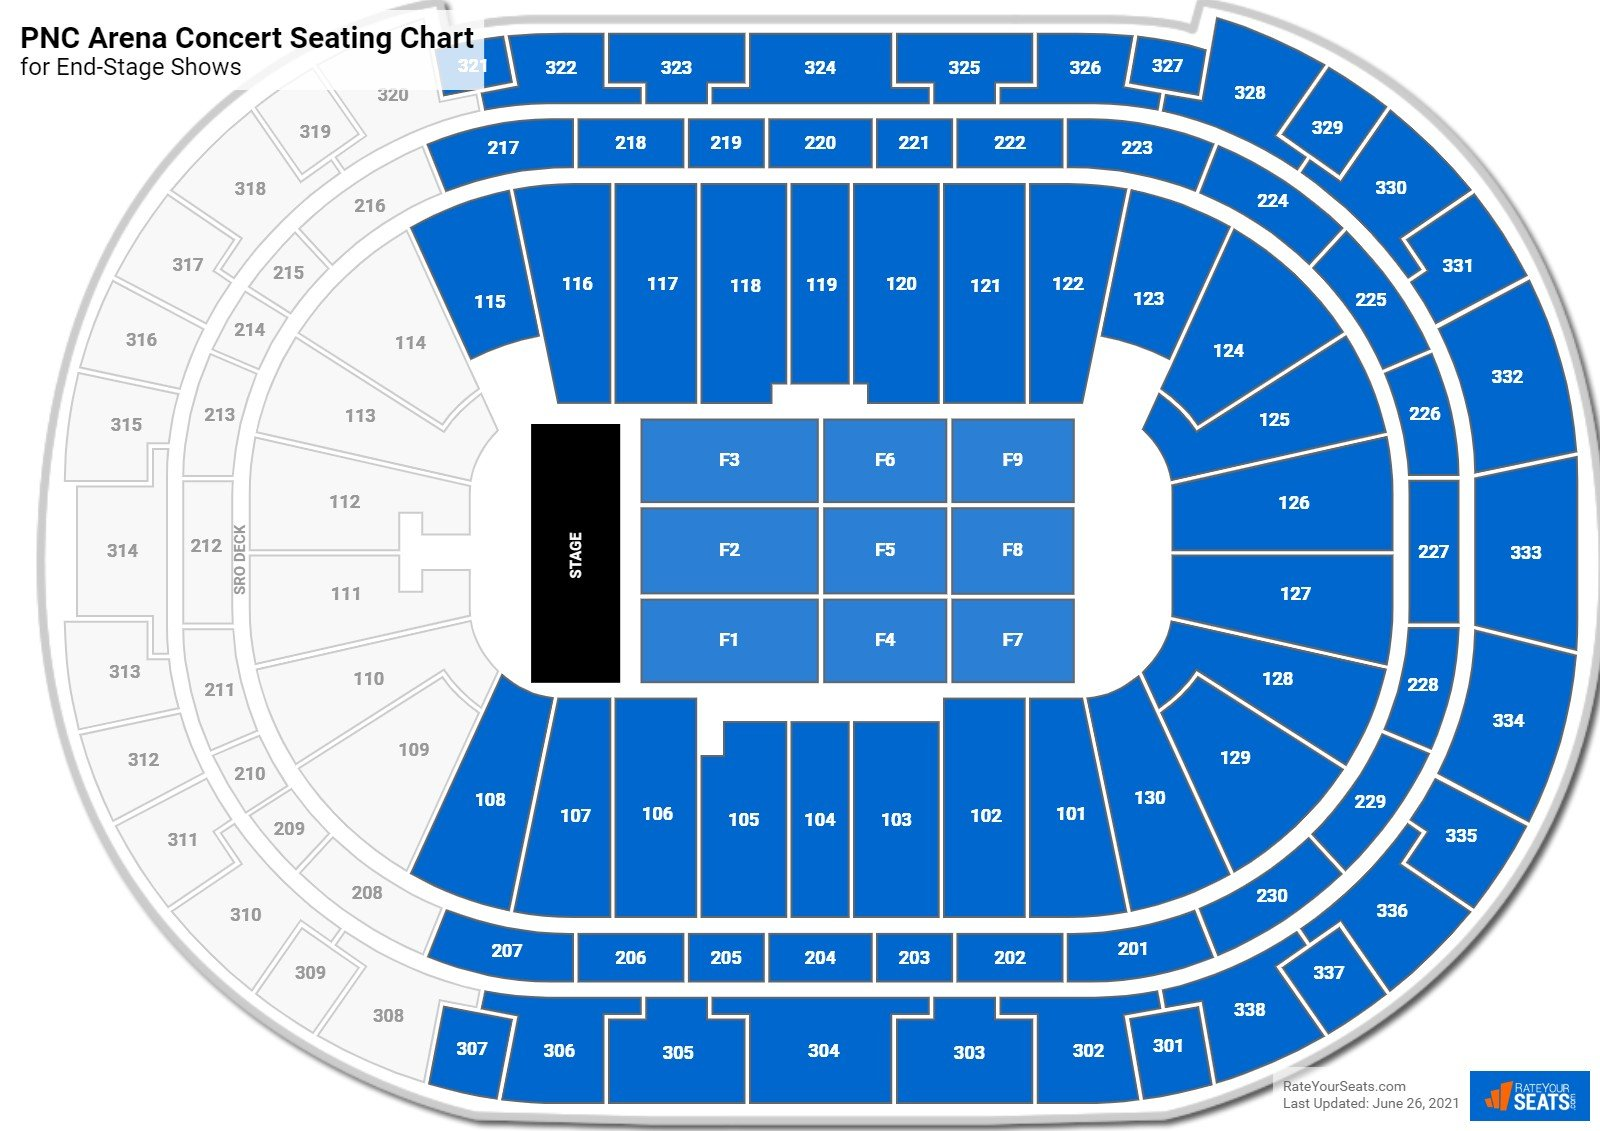 PNC Arena Seating Chart for Concerts